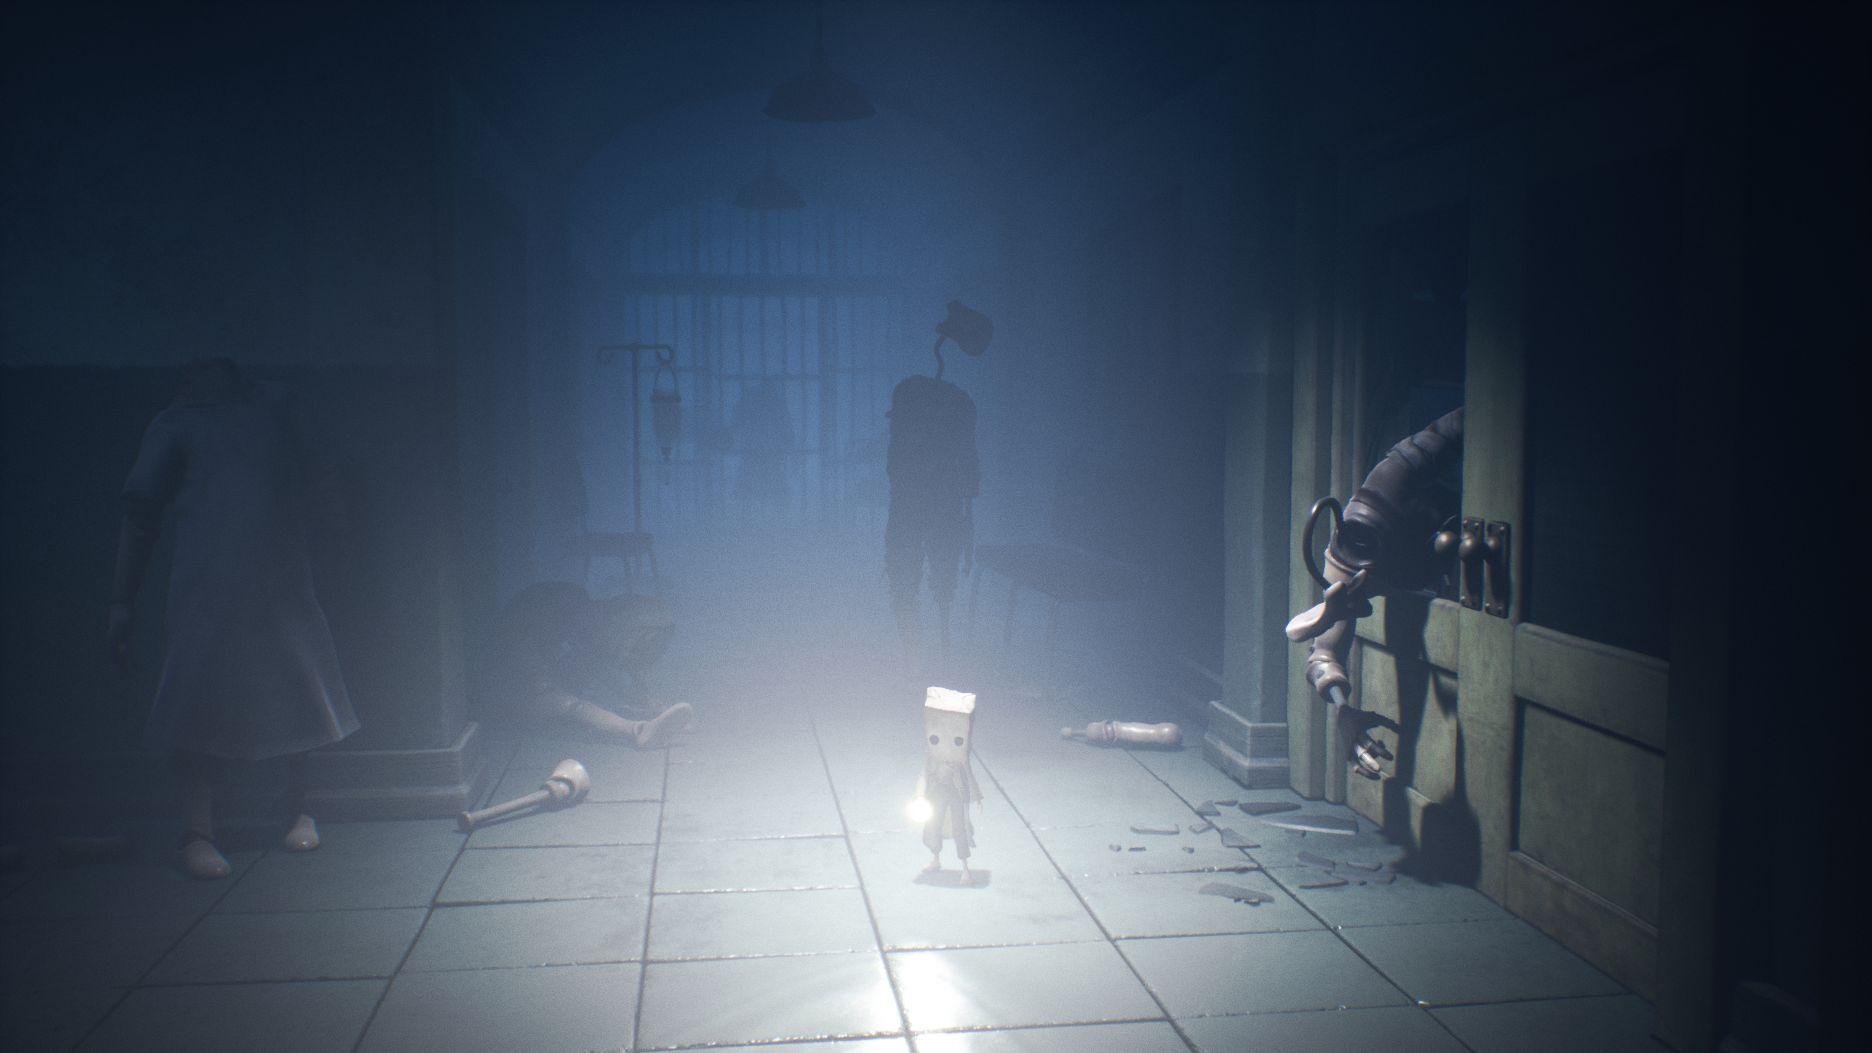 Mono in Little Nightmares standing in a corridor in what looks like a hospital. There are several mannequin figures in the corridor. One has half broken through a doorway on Mono's right, in an effort to grab him